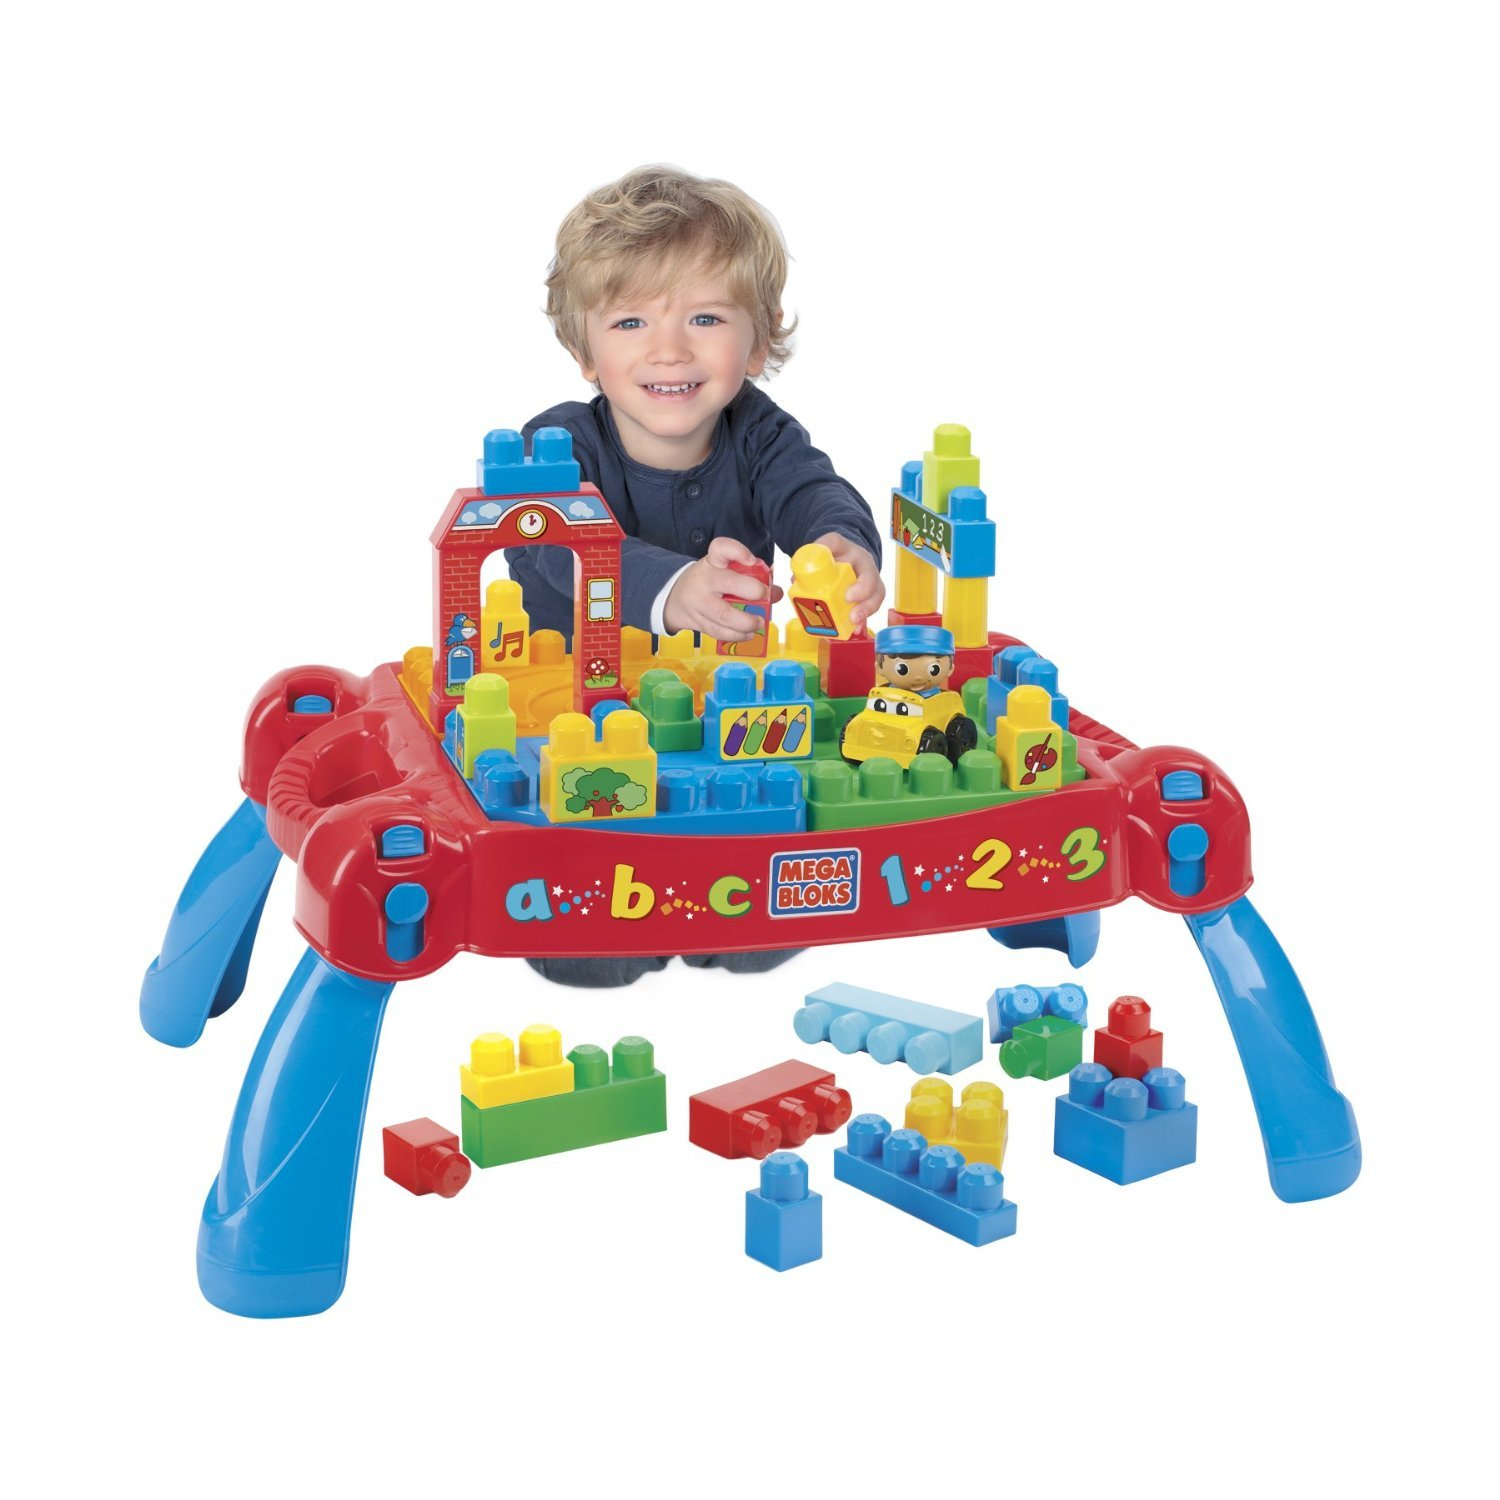 Amazon Mega Bloks Play n Go Table 8237 Age 12 months 3